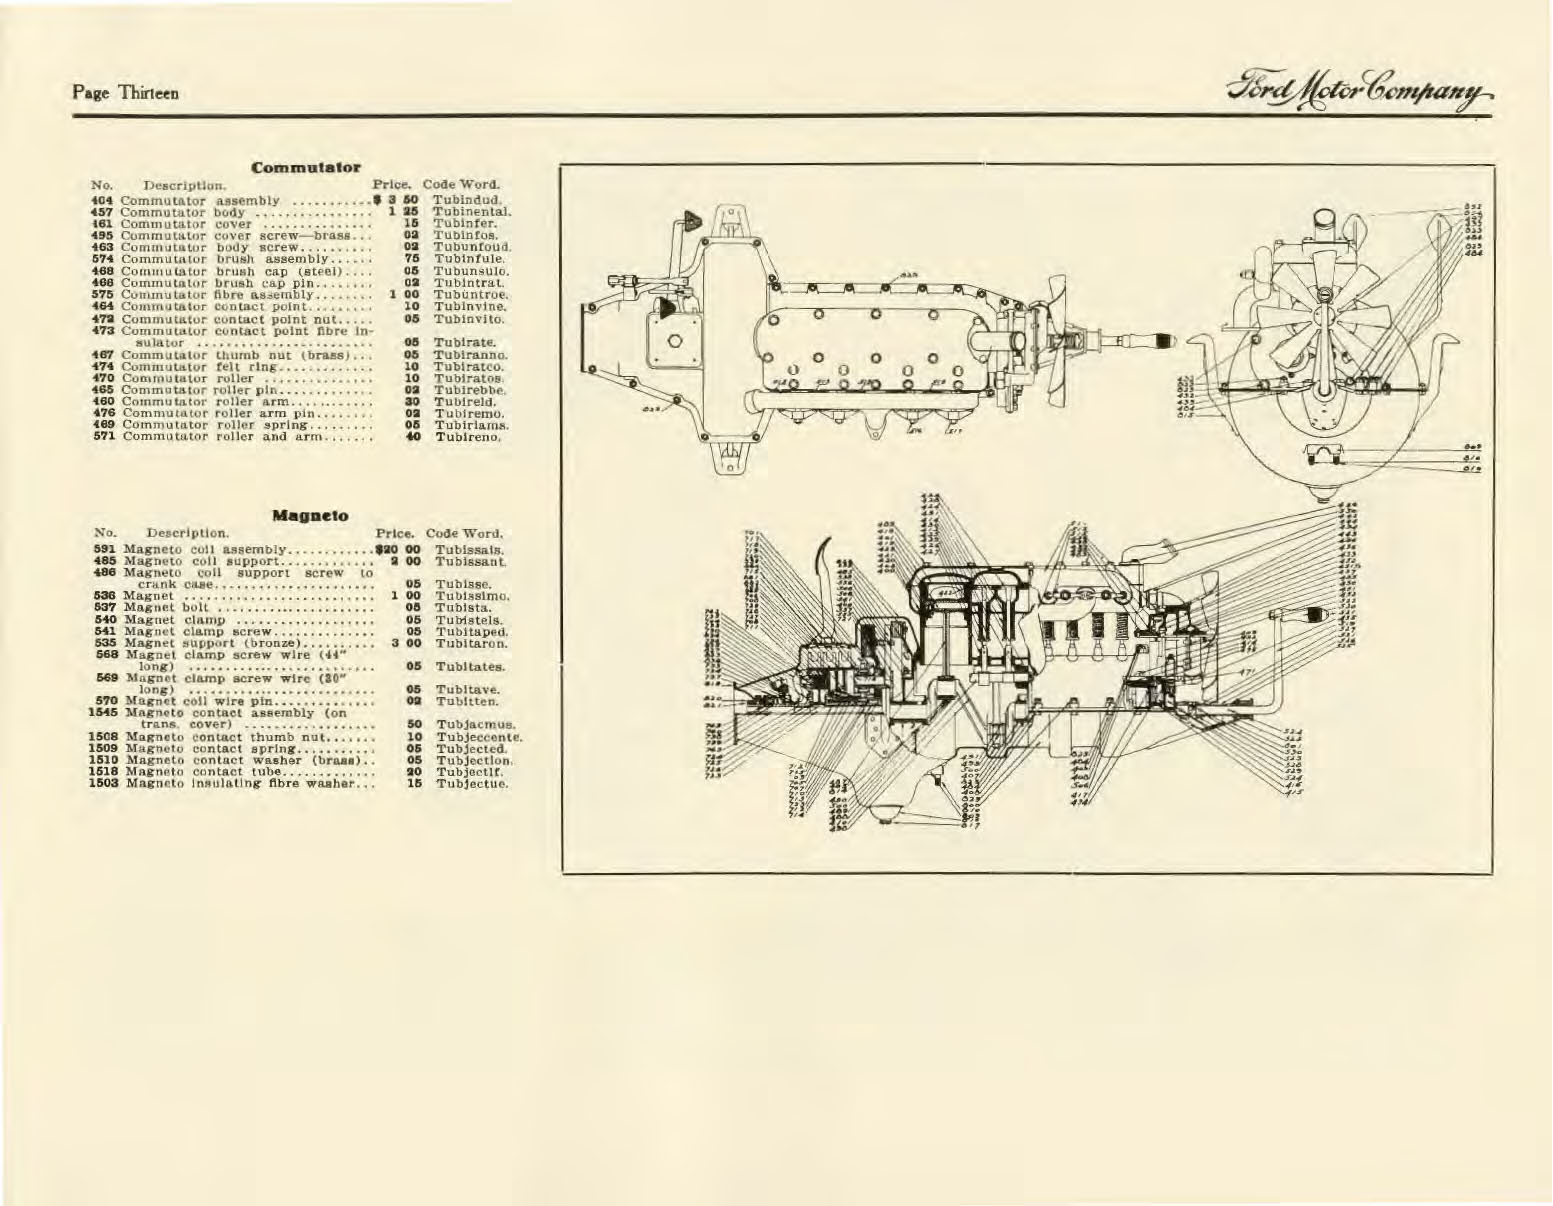 1926 Model T Wiring Diagram 1927 Ford Hight Resolution Of 1909 Price List